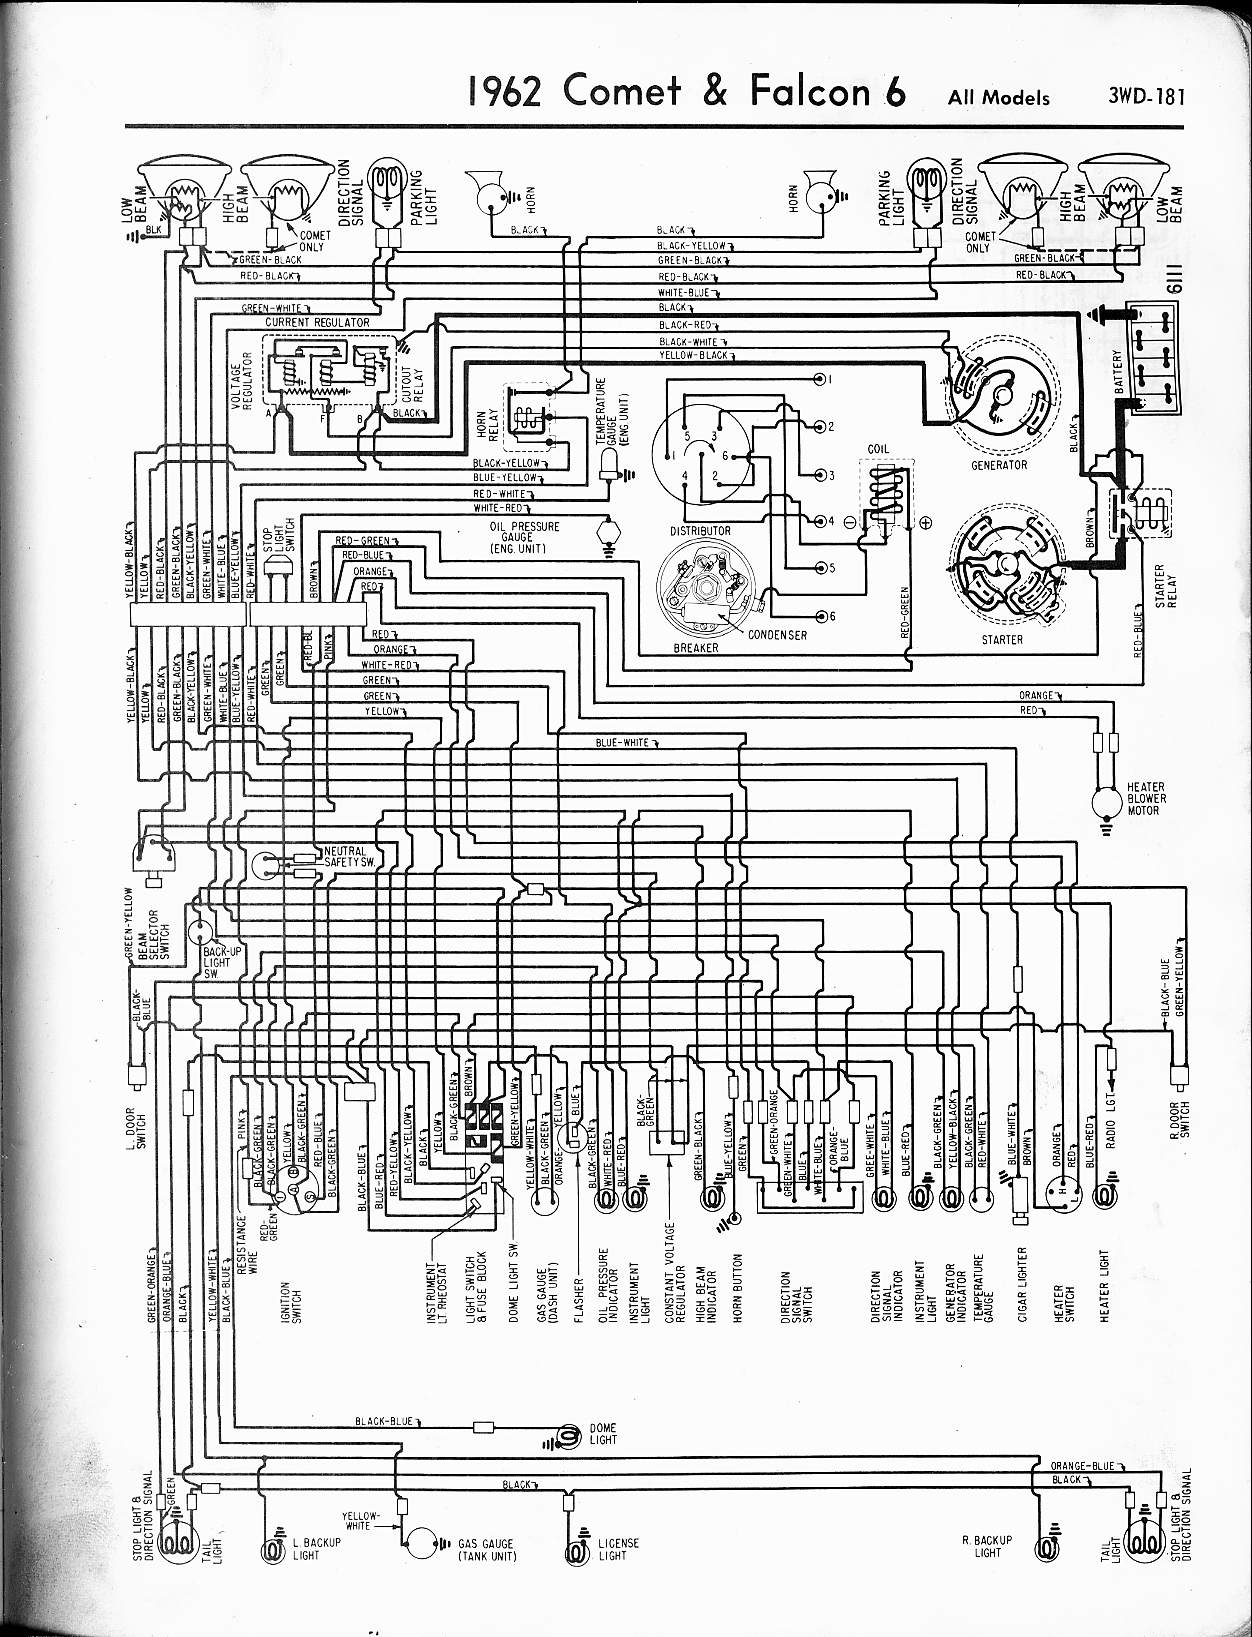 1962 Ford Galaxie Diagram - WIRING CENTER •  Ford Galaxie Wiring Diagram on 1962 ford thunderbird wiring diagram, 1965 ford mustang wiring diagram, 1966 ford thunderbird wiring diagram, 1969 ford mustang wiring diagram, 1970 ford mustang wiring diagram, 1979 ford bronco wiring diagram, 1973 ford mustang wiring diagram, 1955 ford thunderbird wiring diagram, 1963 ford galaxie parts catalog, 1967 ford mustang wiring diagram, 1971 ford mustang wiring diagram, 1962 ford falcon wiring diagram, 1966 ford mustang wiring diagram, 1960 ford thunderbird wiring diagram, 1960 ford falcon wiring diagram,